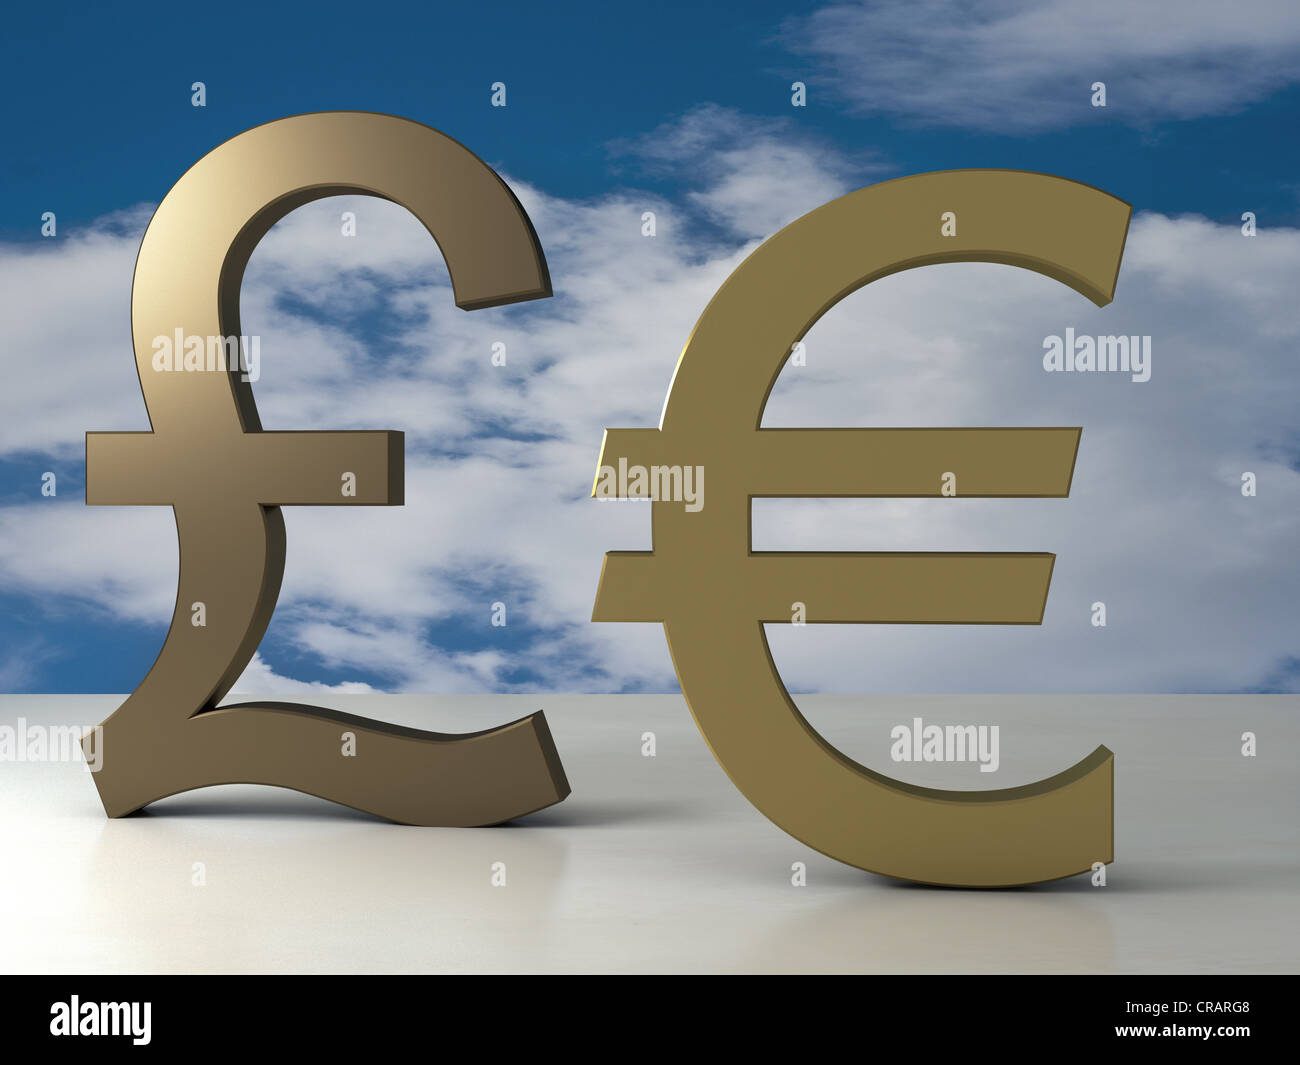 Pound Sign And Euro Sign Made Of Brass In Front Of A Cloudy Sky